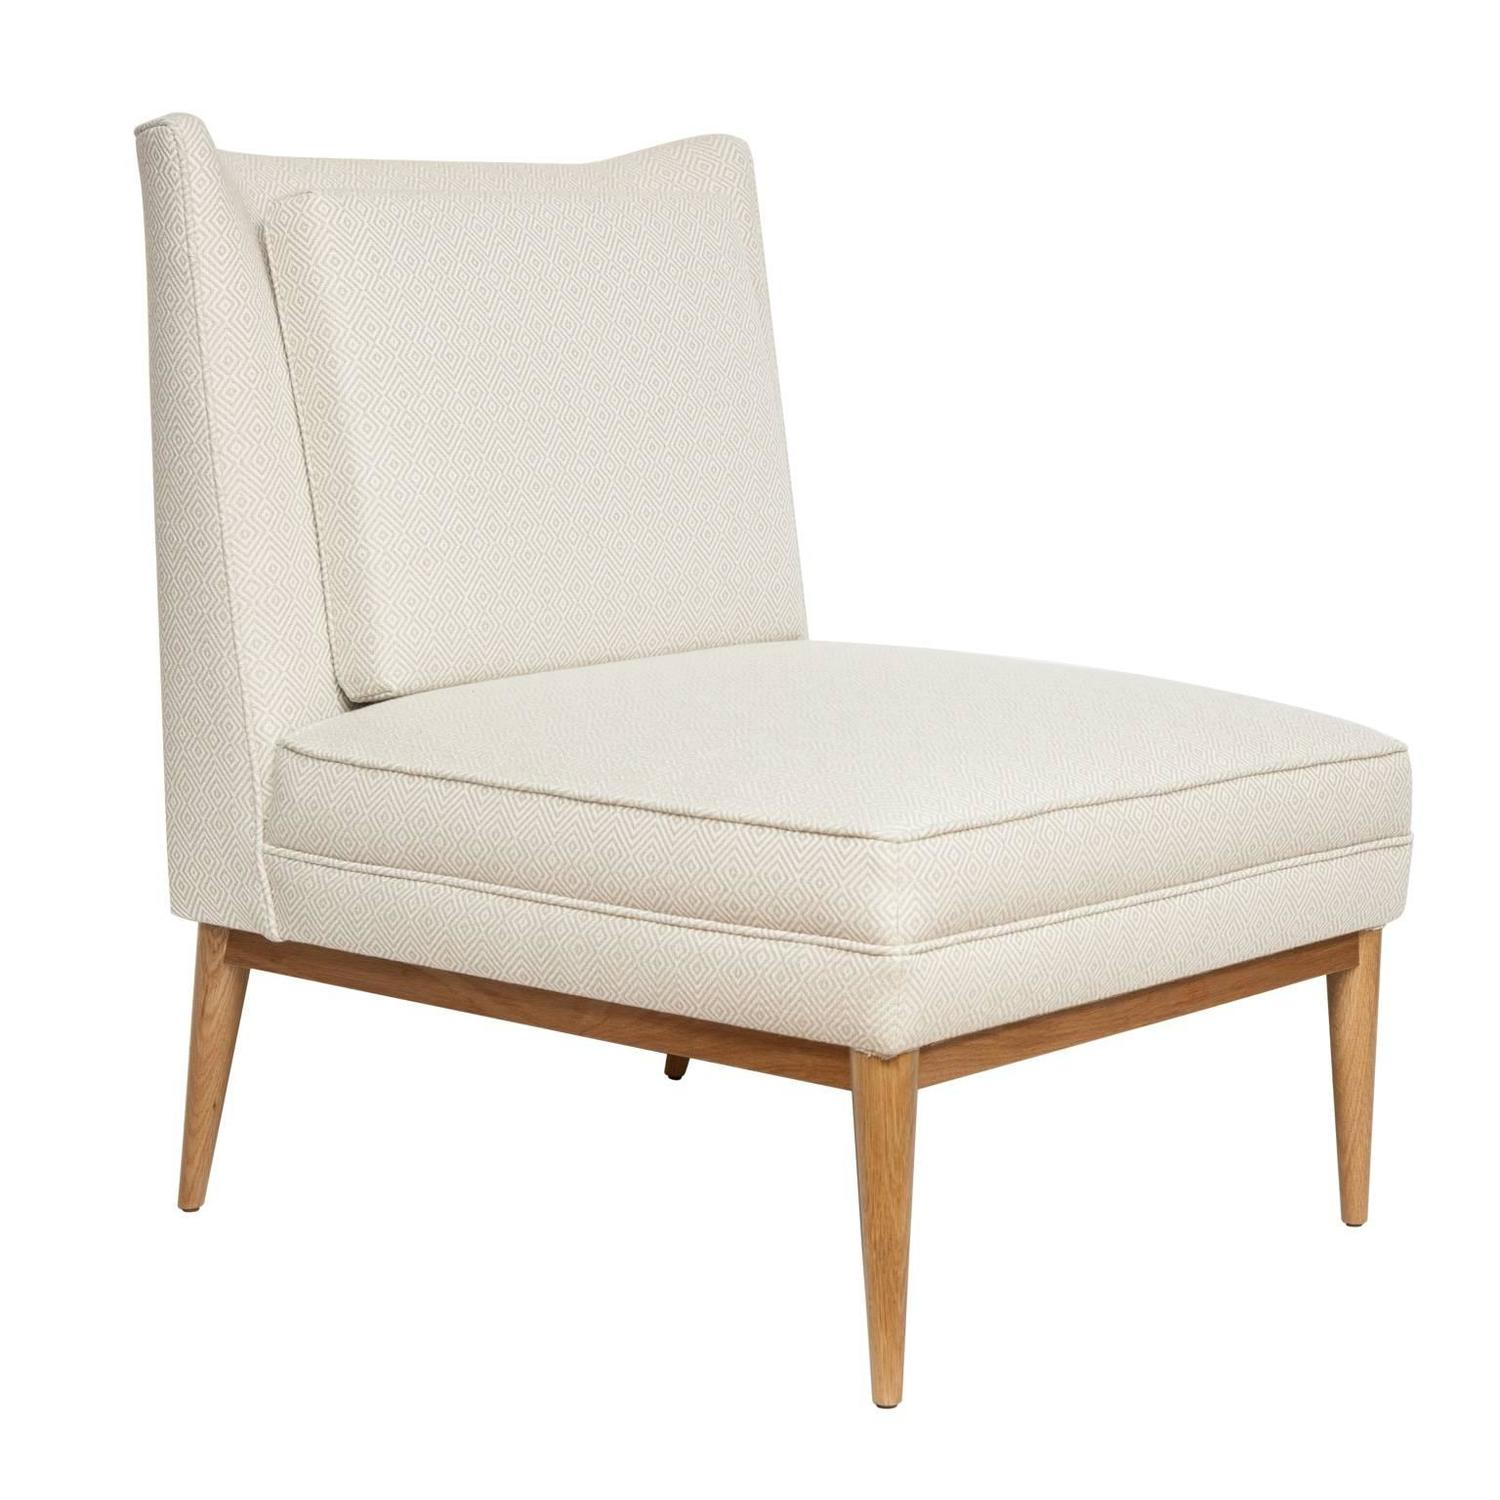 Colin Slipper Chair For Sale At 1stdibs